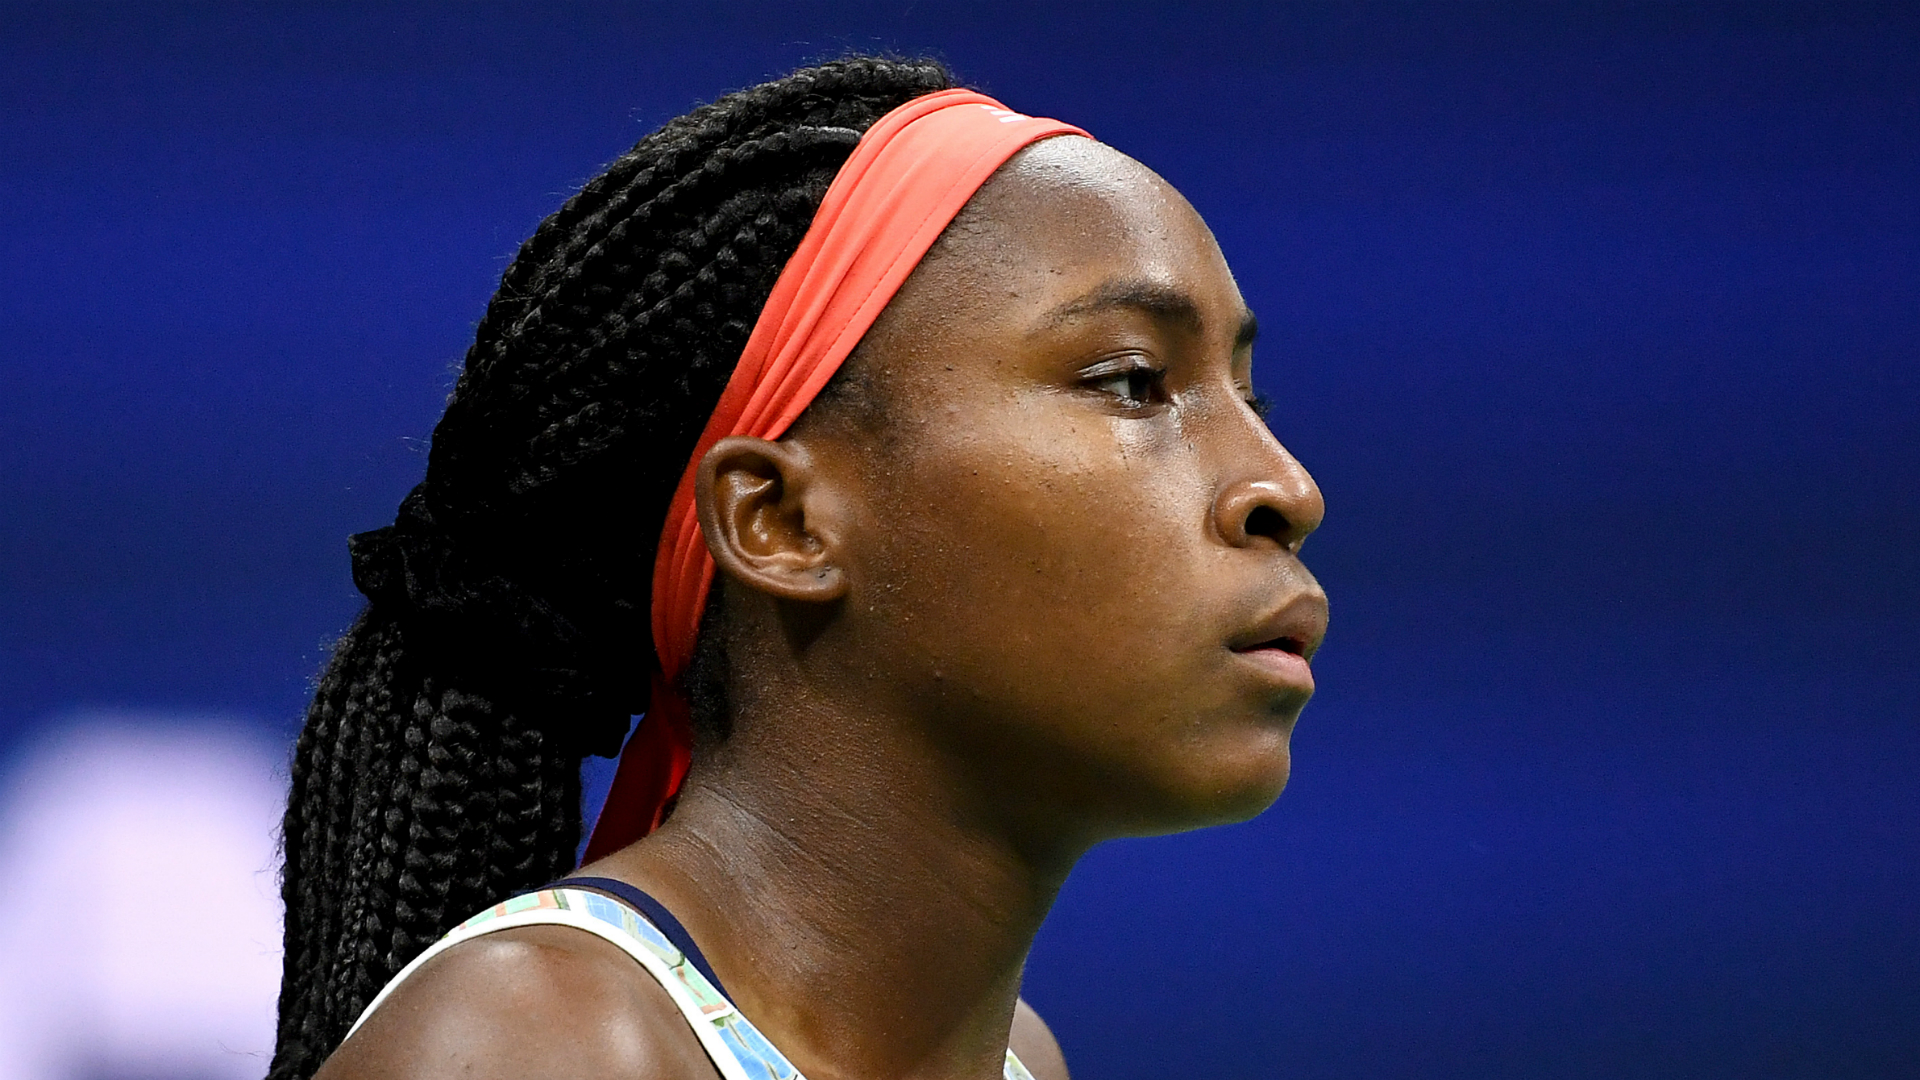 First-time finalist Coco Gauff: I showed I can play at a top level